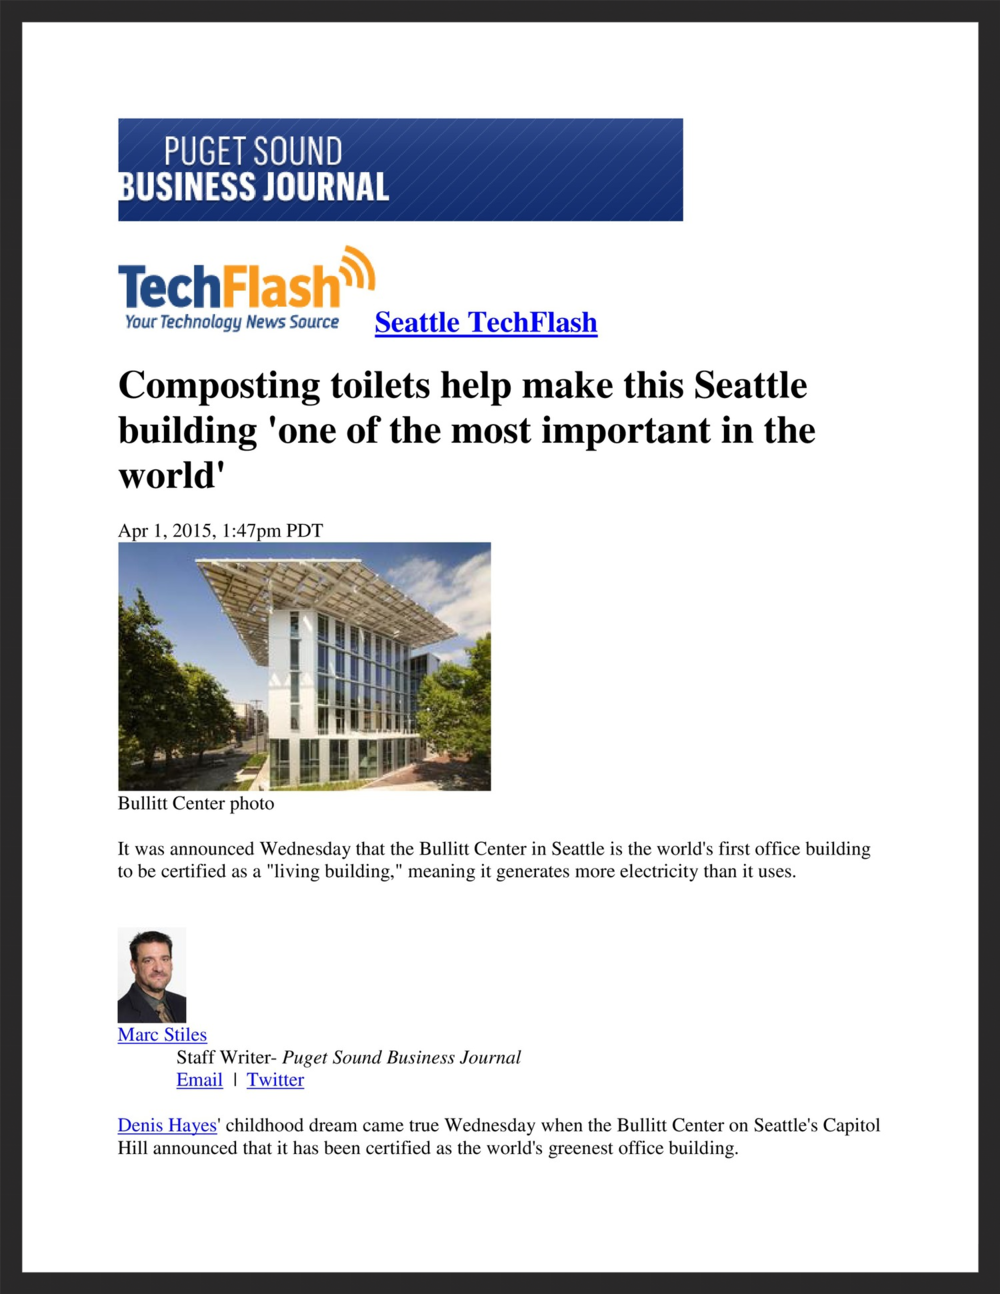 UNICO  Puget Sound Business Journal  04.01.2015